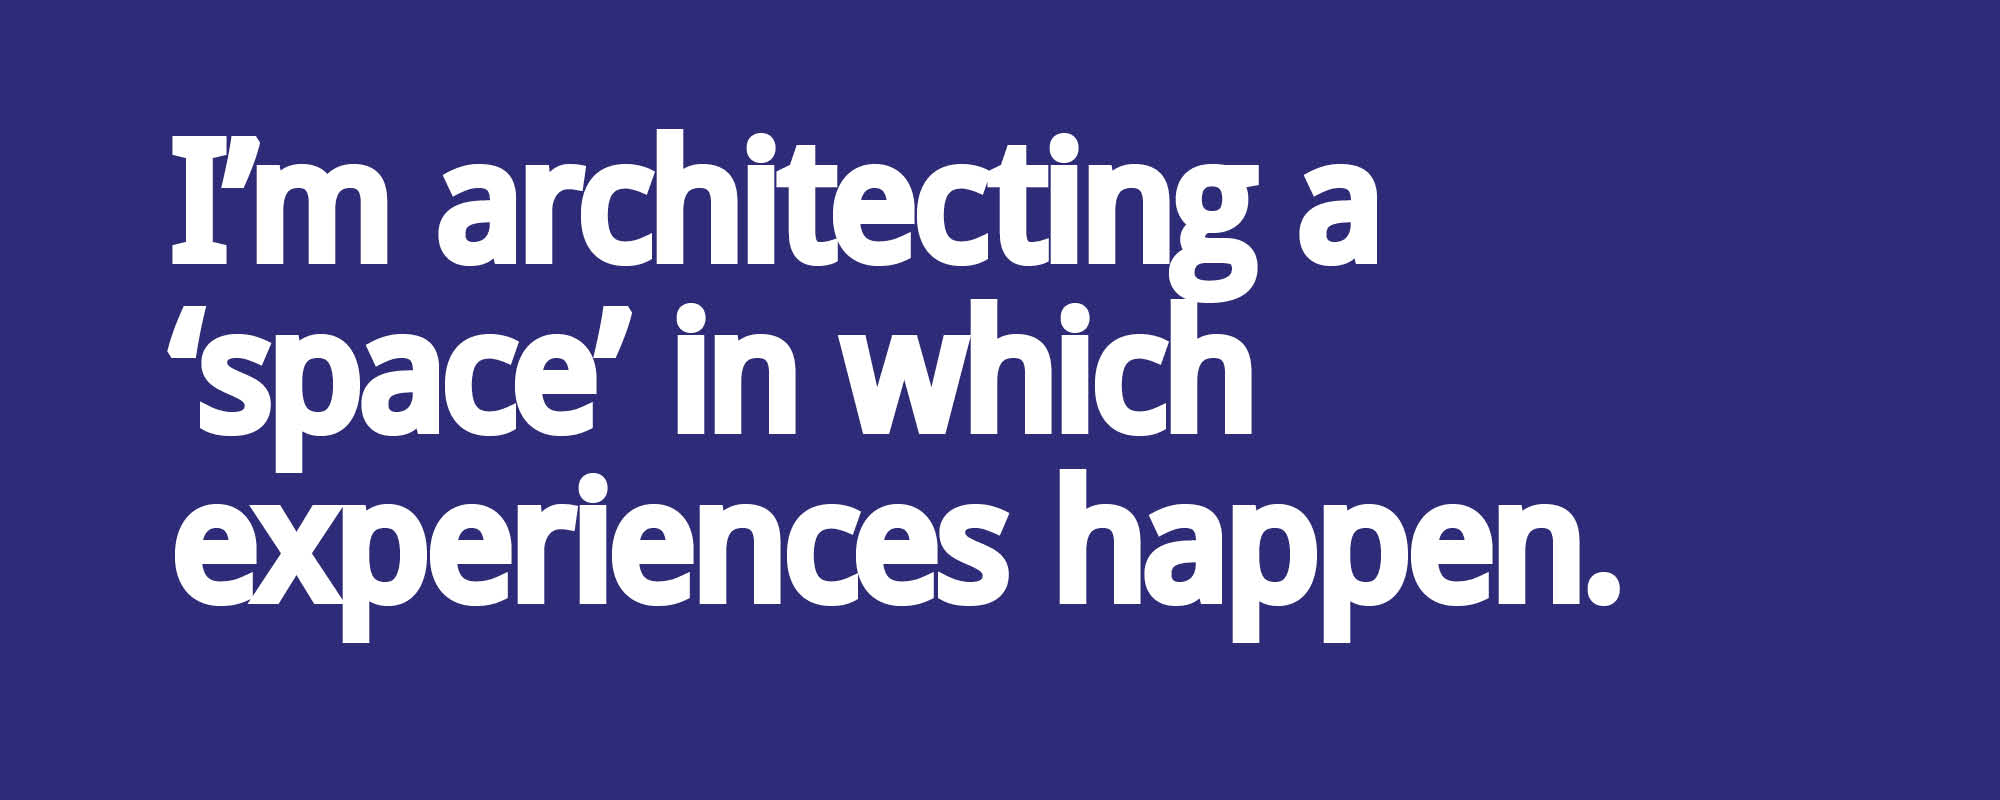 I'm architecting a space in which experiences happen